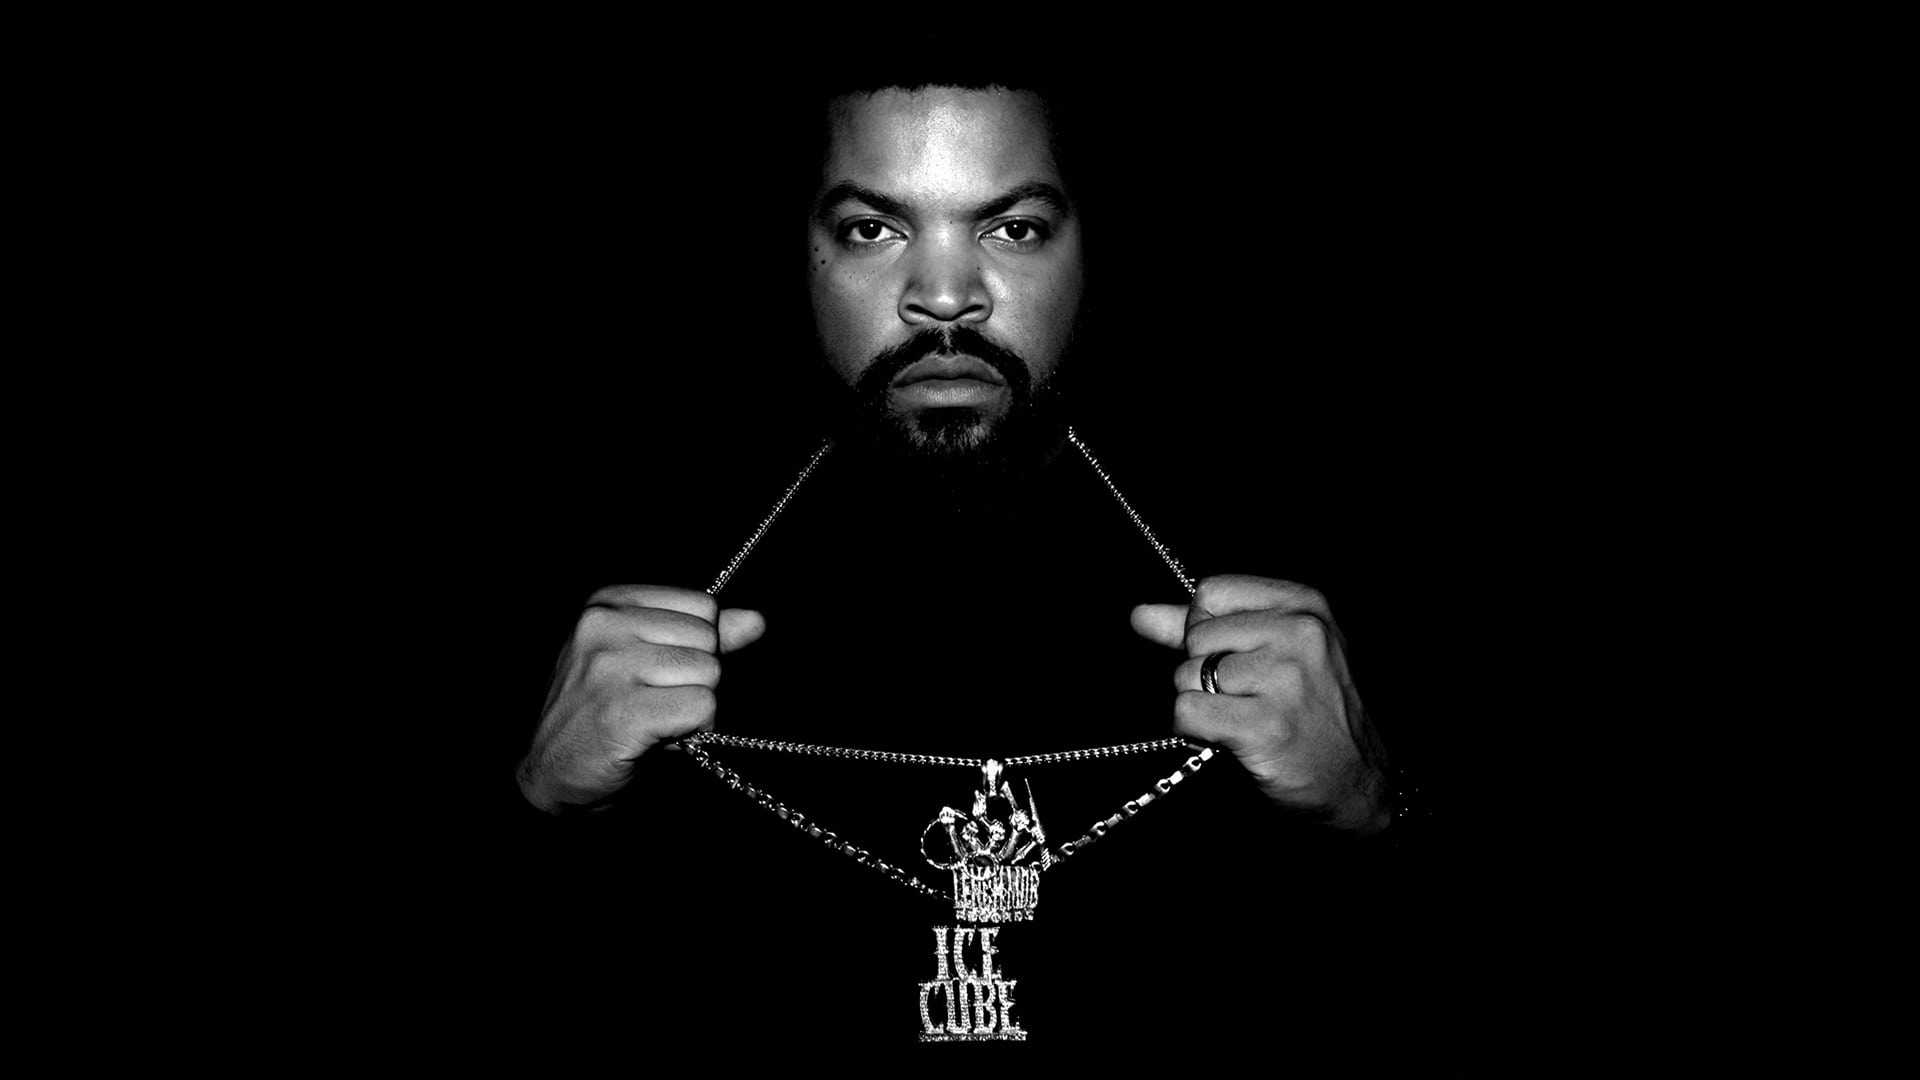 Ice Cube HQ wallpapers